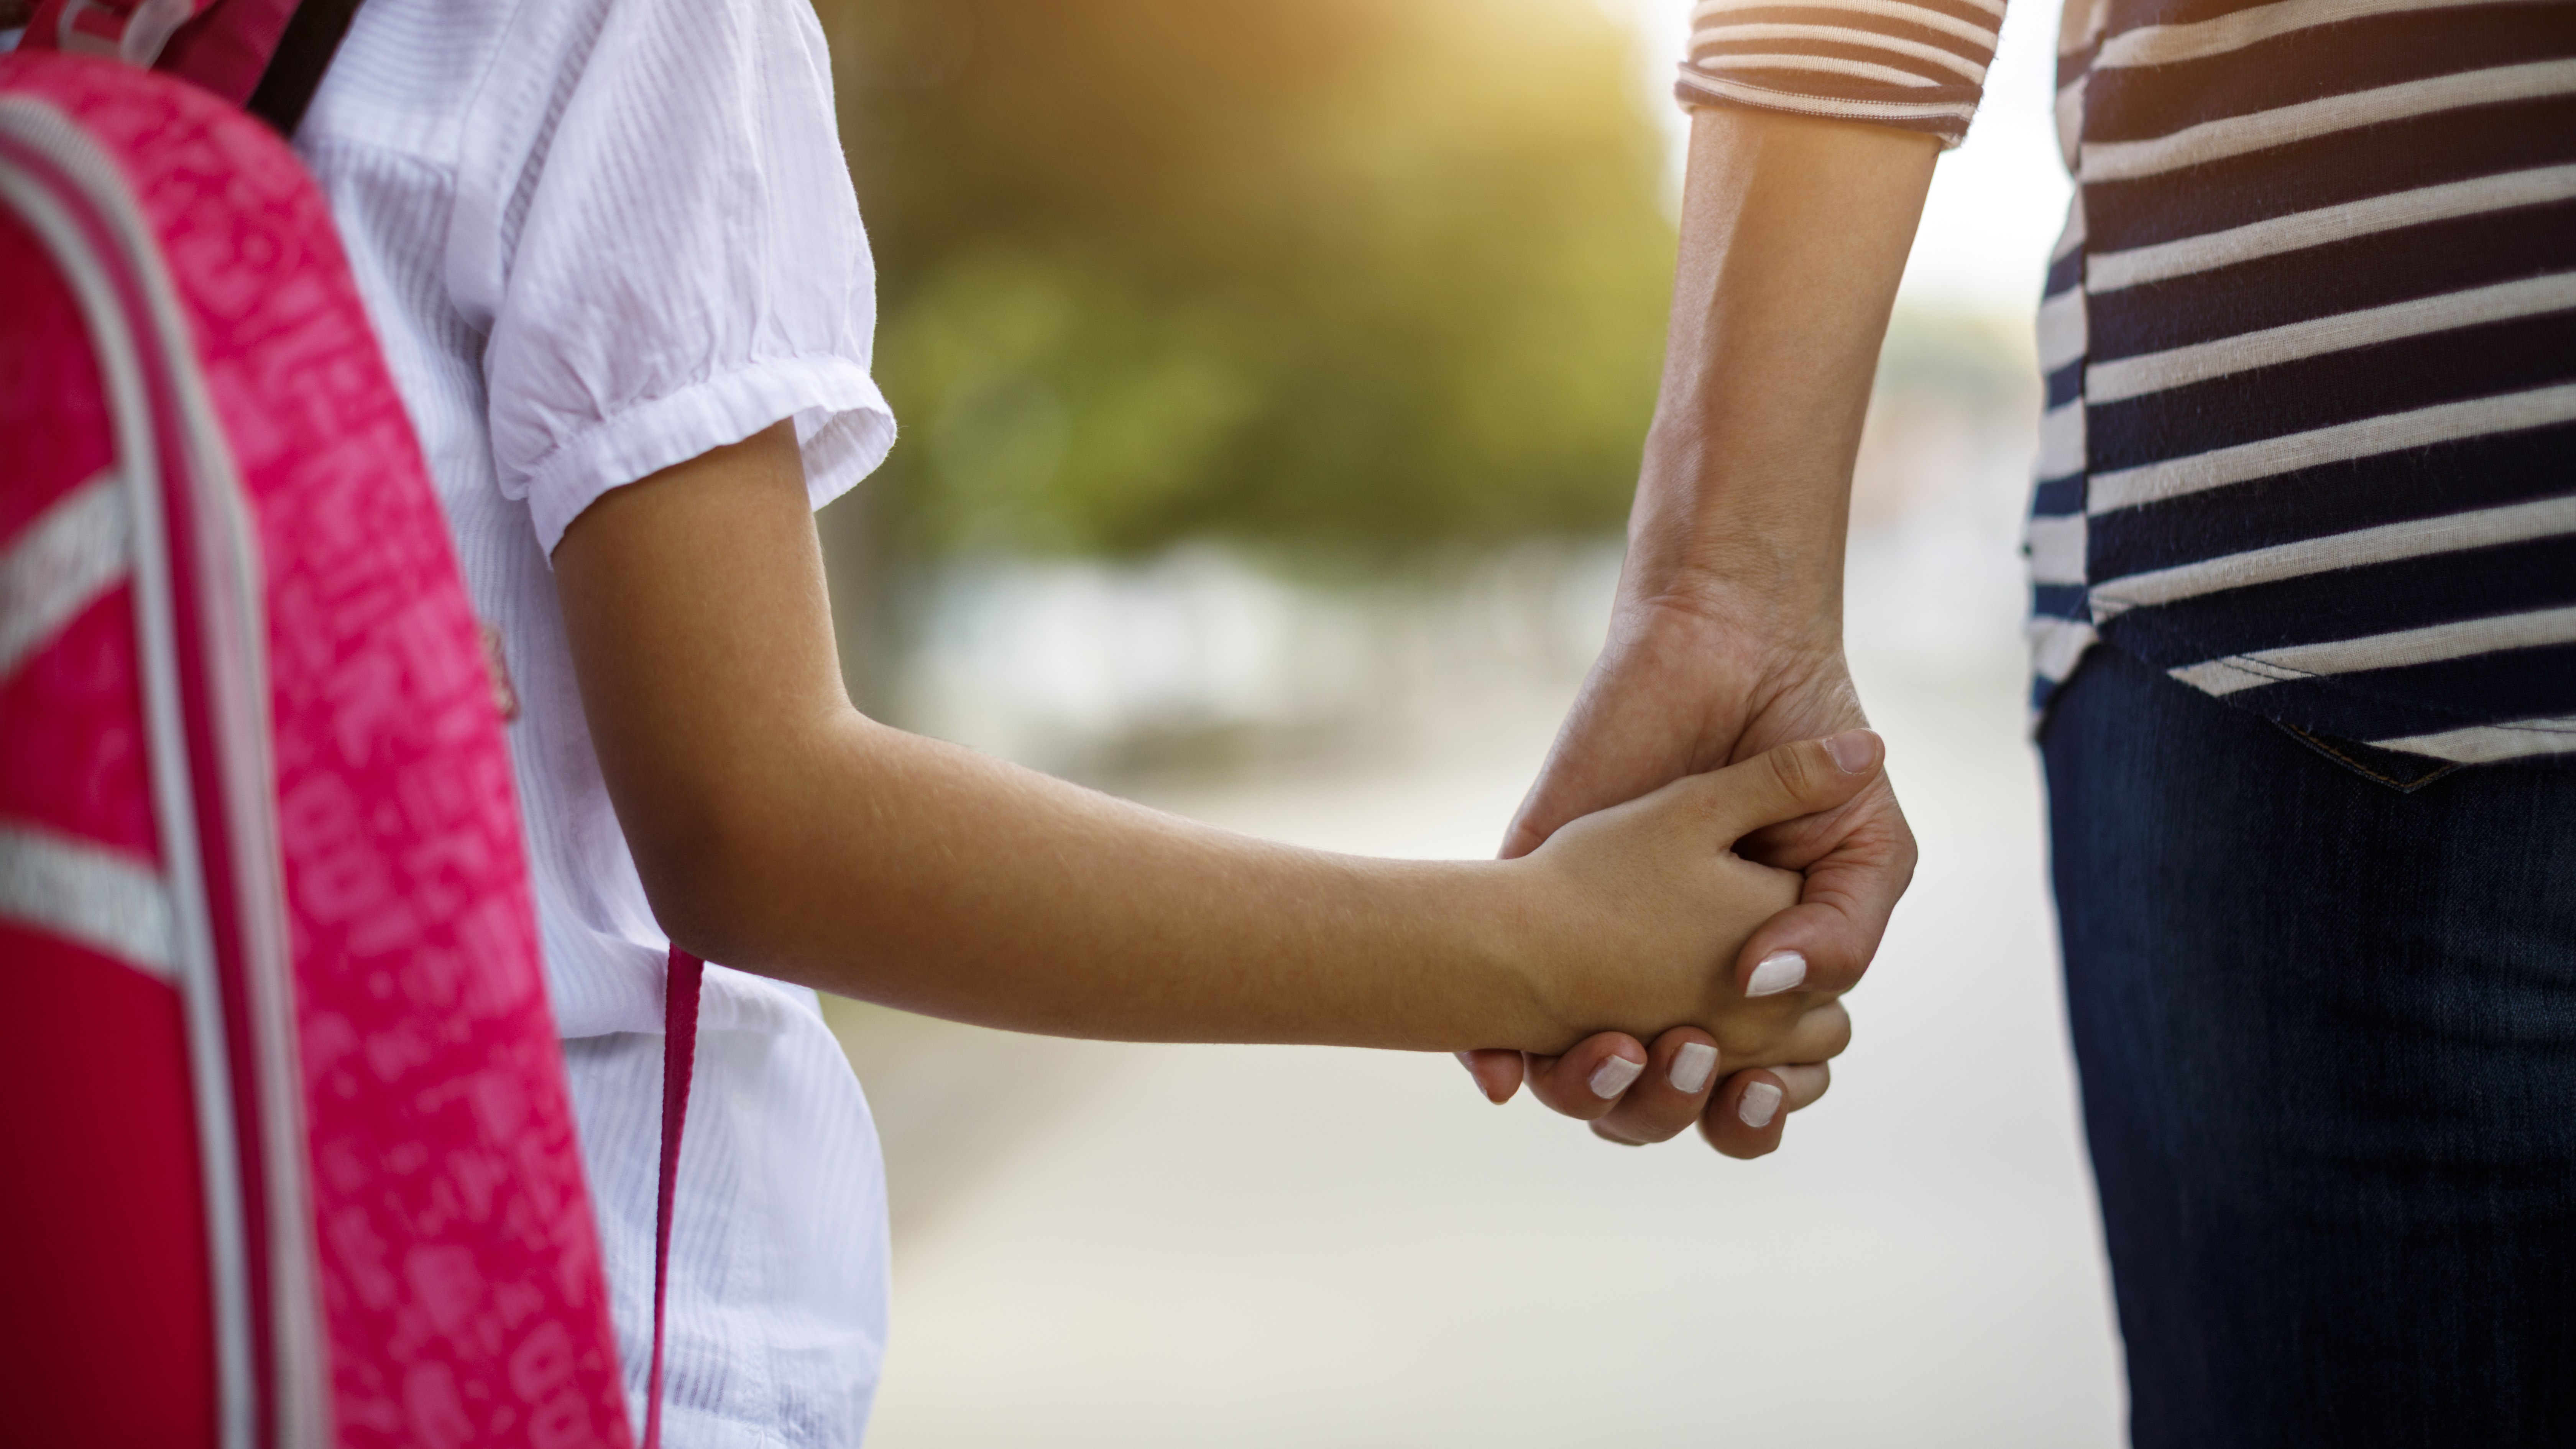 A mother and daughter holding hands to illustrate a piece on parenting through an anxiety disorder